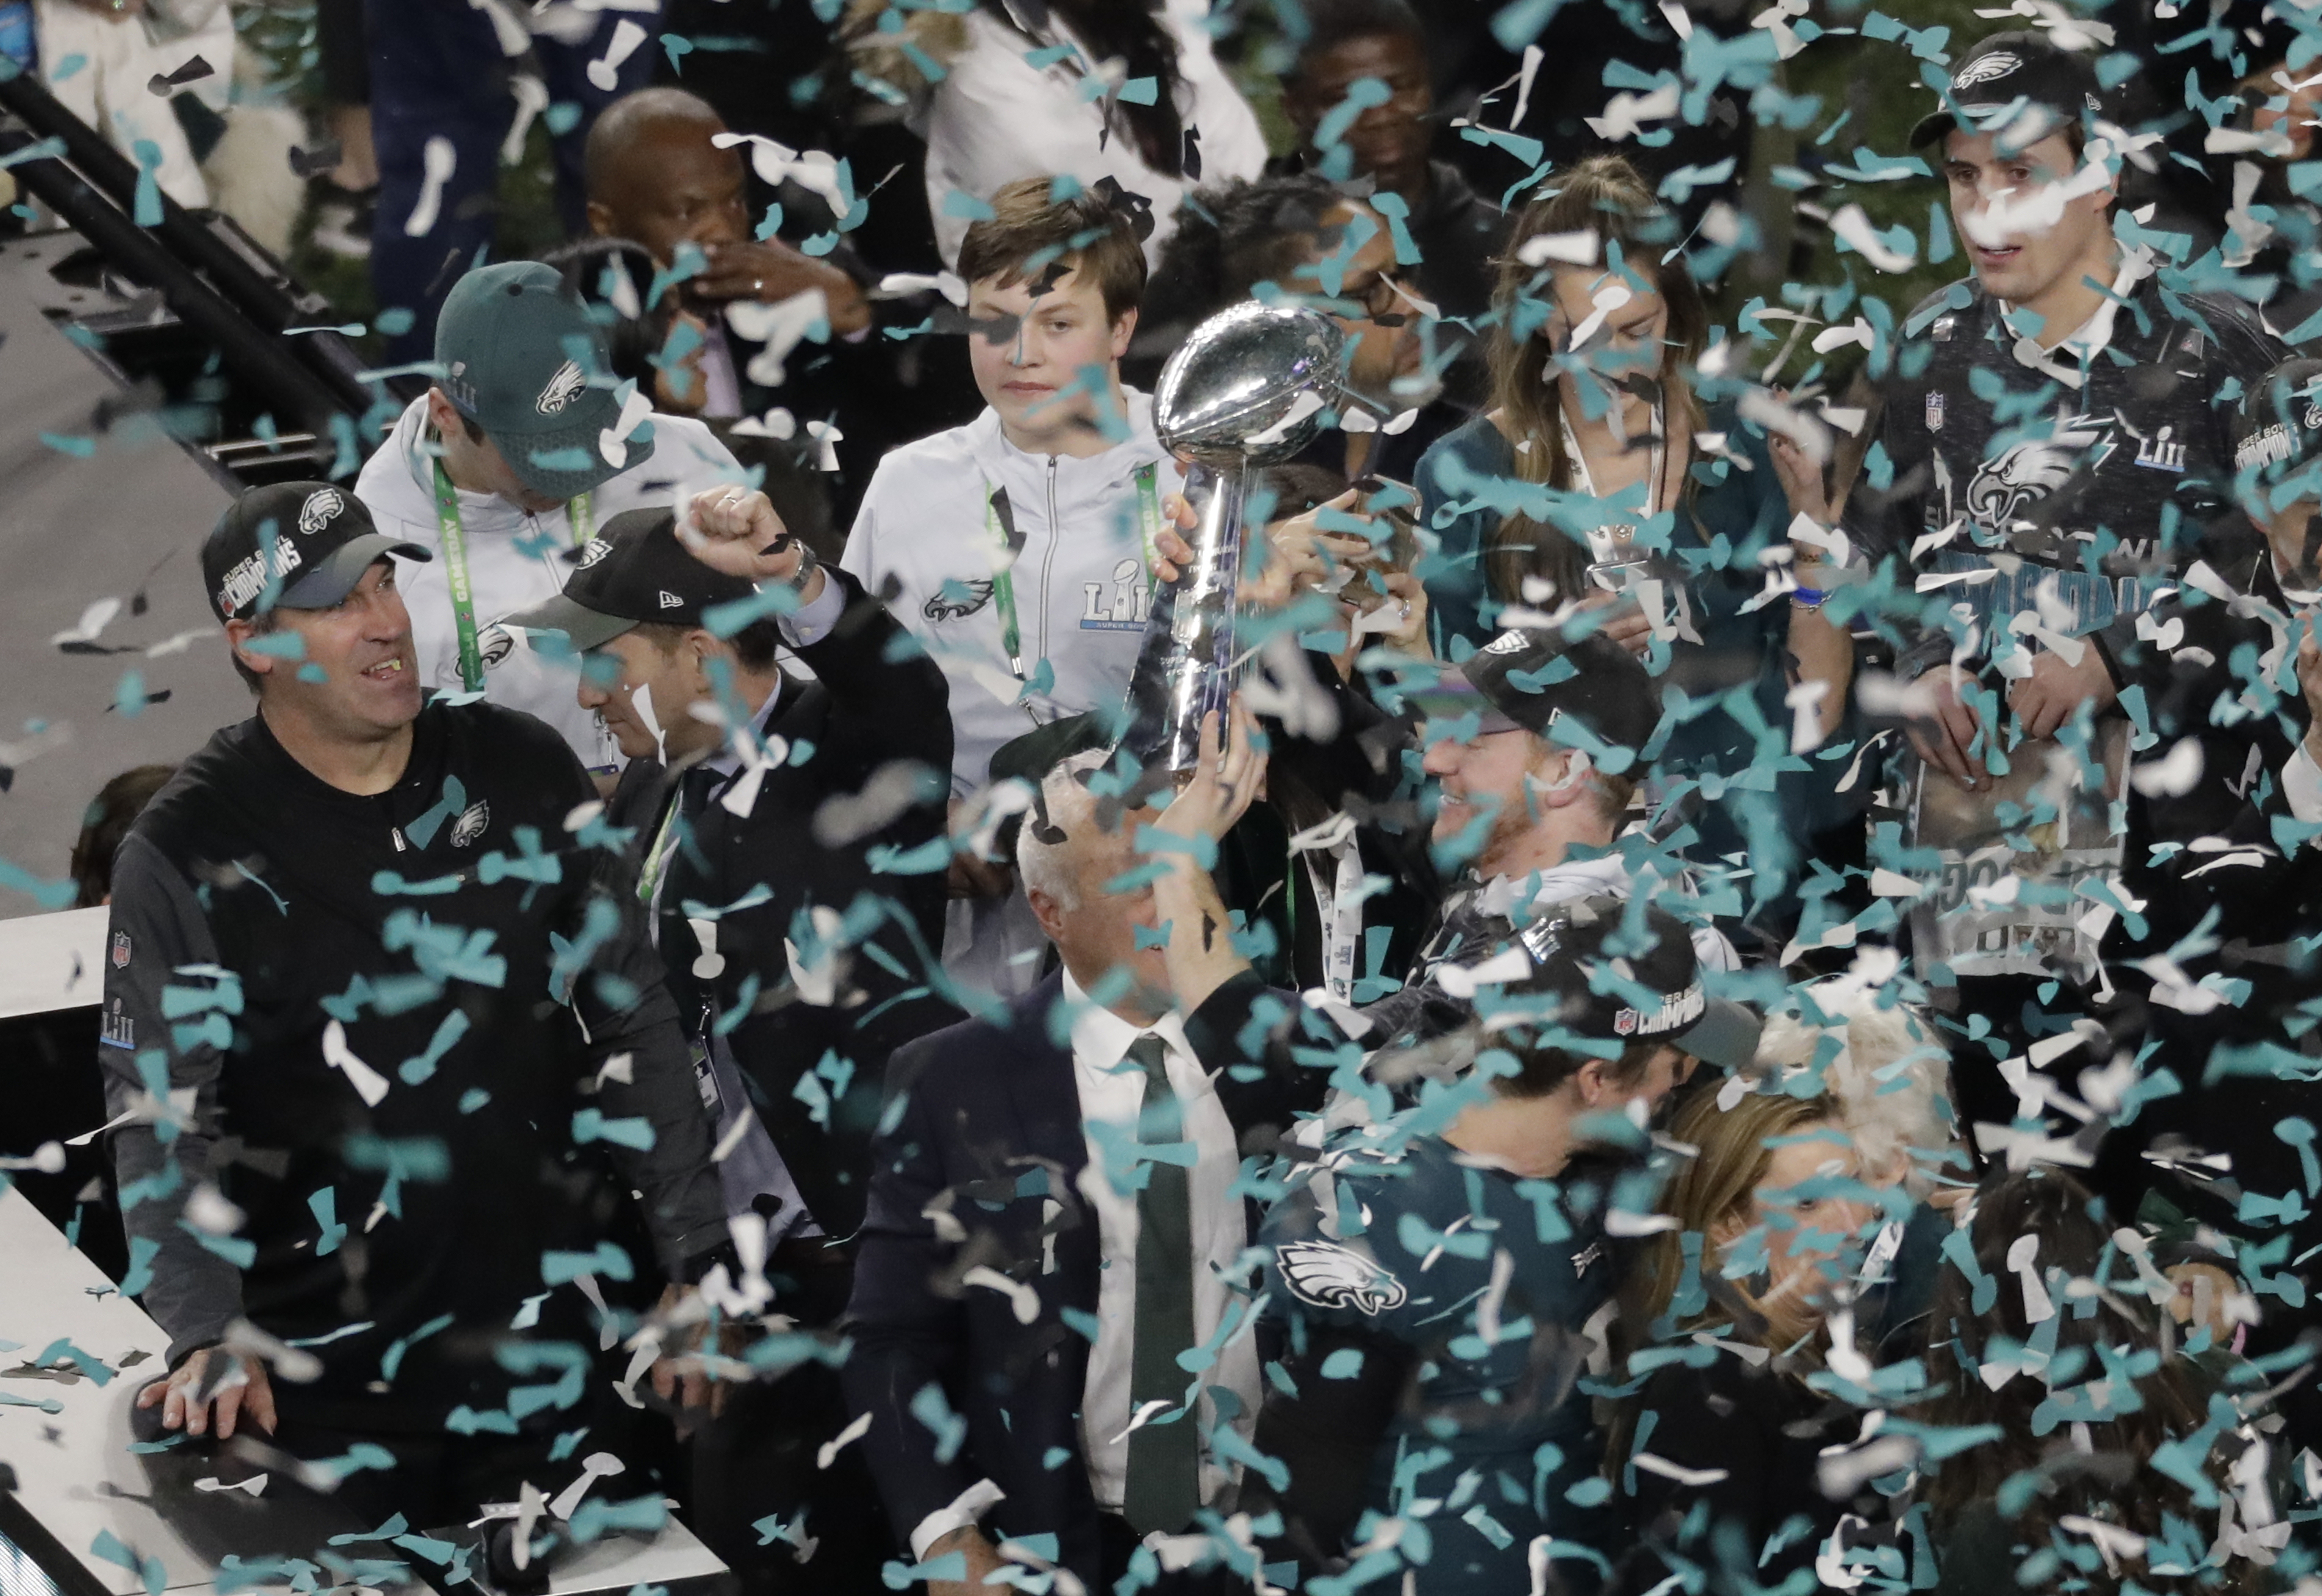 "<div class=""meta image-caption""><div class=""origin-logo origin-image ap""><span>AP</span></div><span class=""caption-text"">Philadelphia Eagles quarterback Carson Wentz hoists the Vincent Lombardi trophy after the NFL Super Bowl 52 football game against the New England Patriots. (AP Photo/Eric Gay)</span></div>"